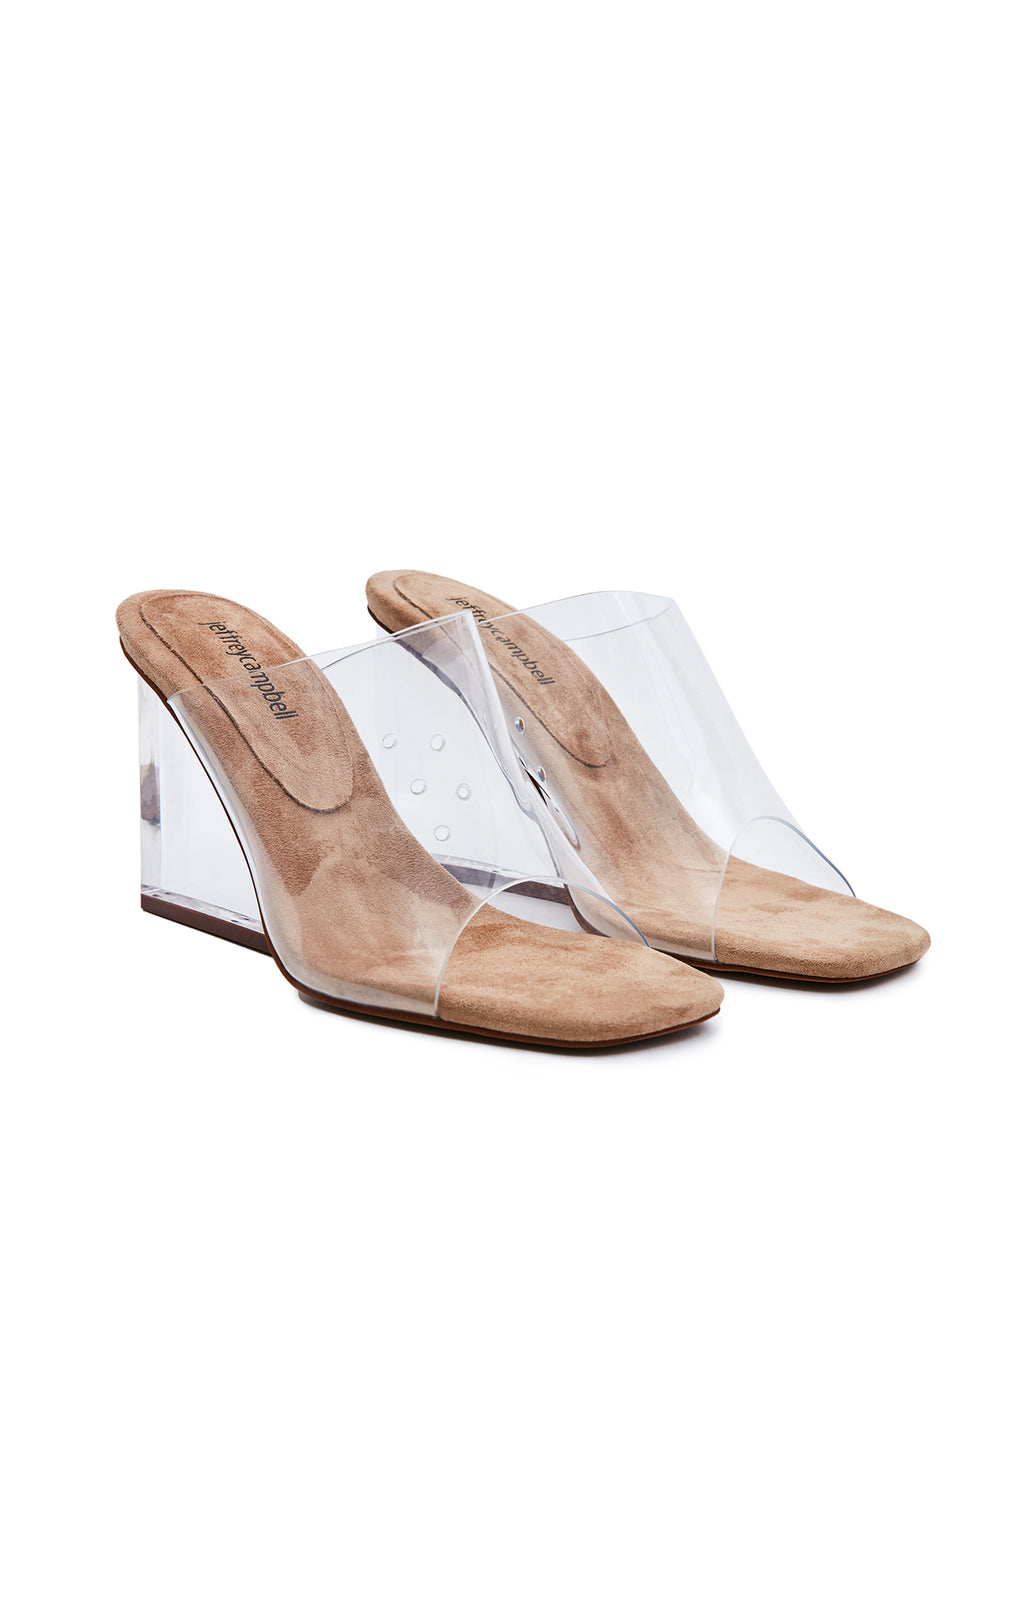 JEFFREY CAMPBELL ACETATE CLEAR WEDGE MULE